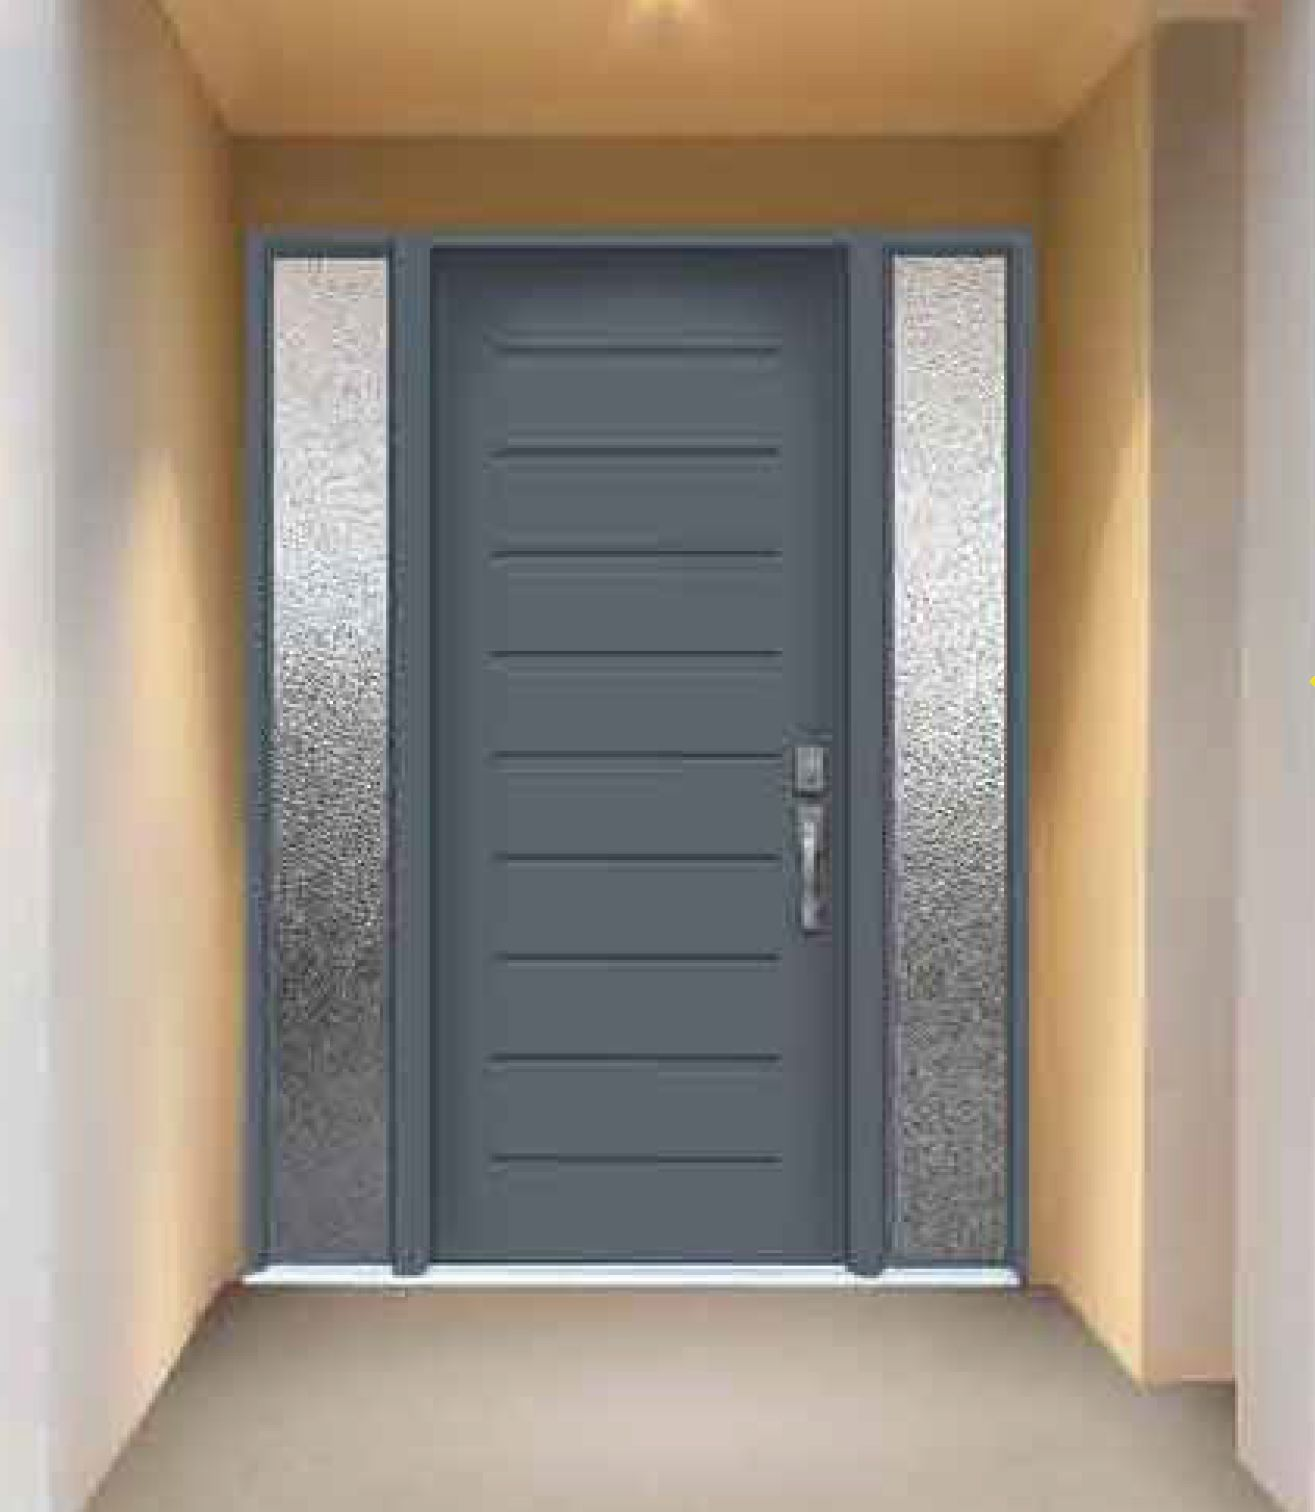 lowes modern entry doors - Google Search | front door | Pinterest ...